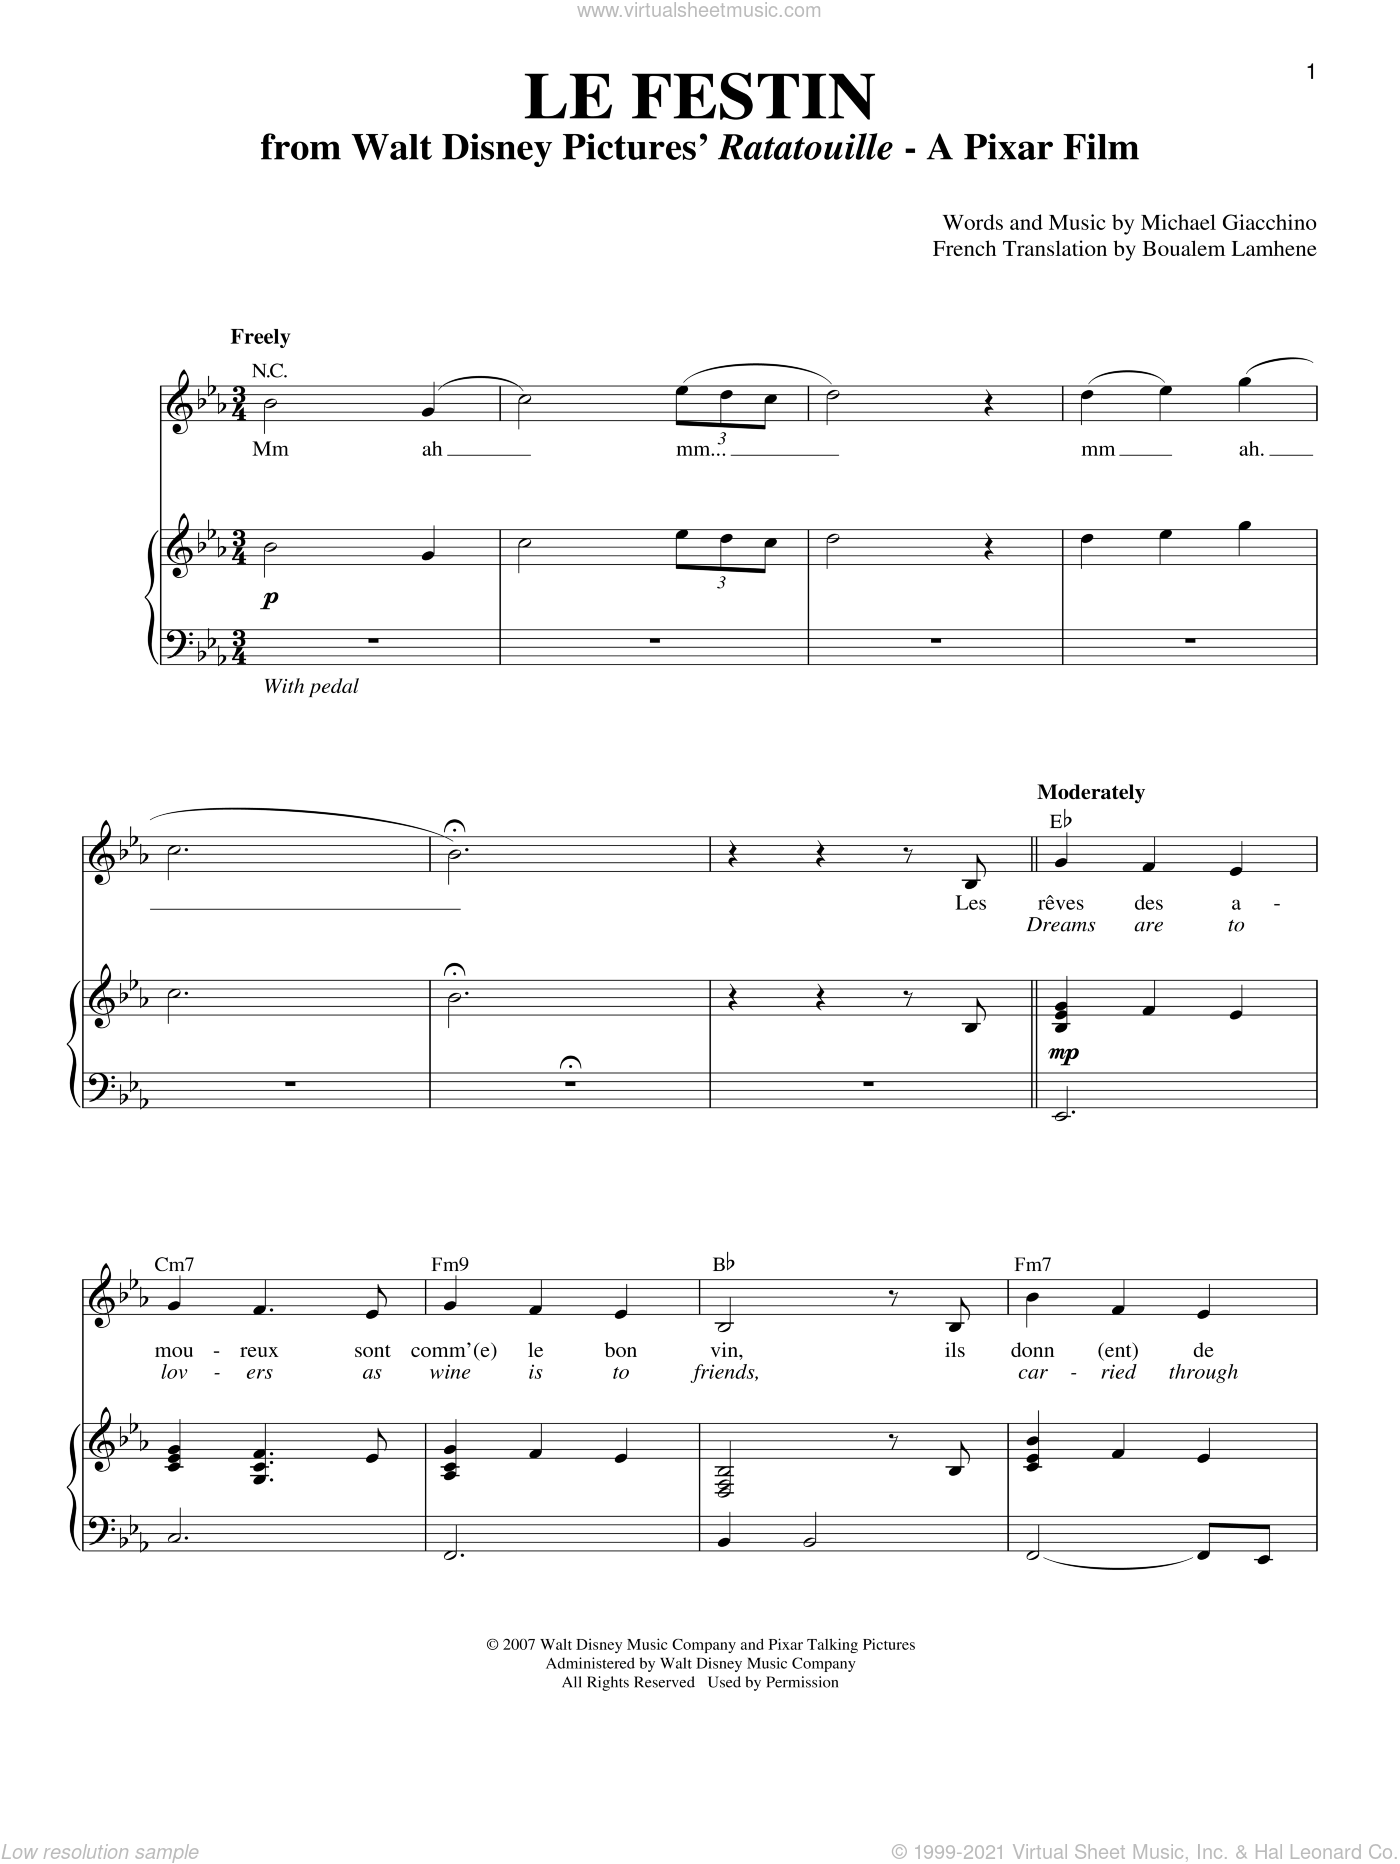 Le Festin (from Ratatouille) sheet music for voice and piano by Michael Giacchino and Boualem Lamhene, intermediate skill level